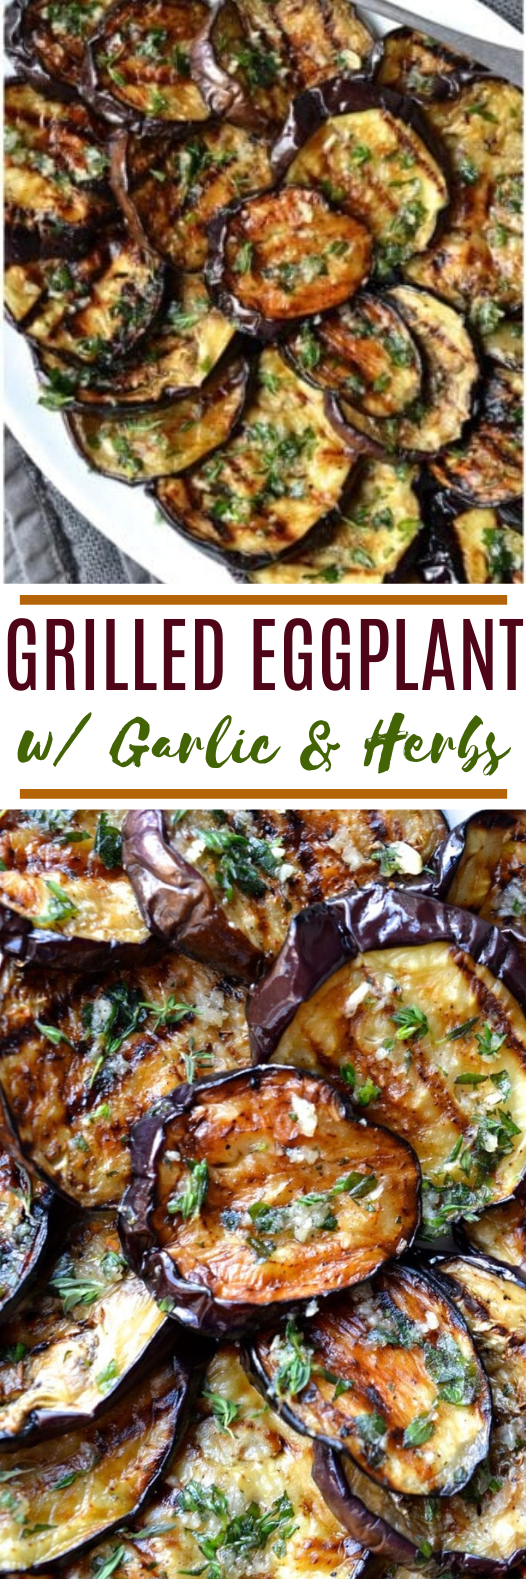 Grilled Eggplant with Garlic & Herbs #vegan #recipes #veggies #grilling #glutenfree